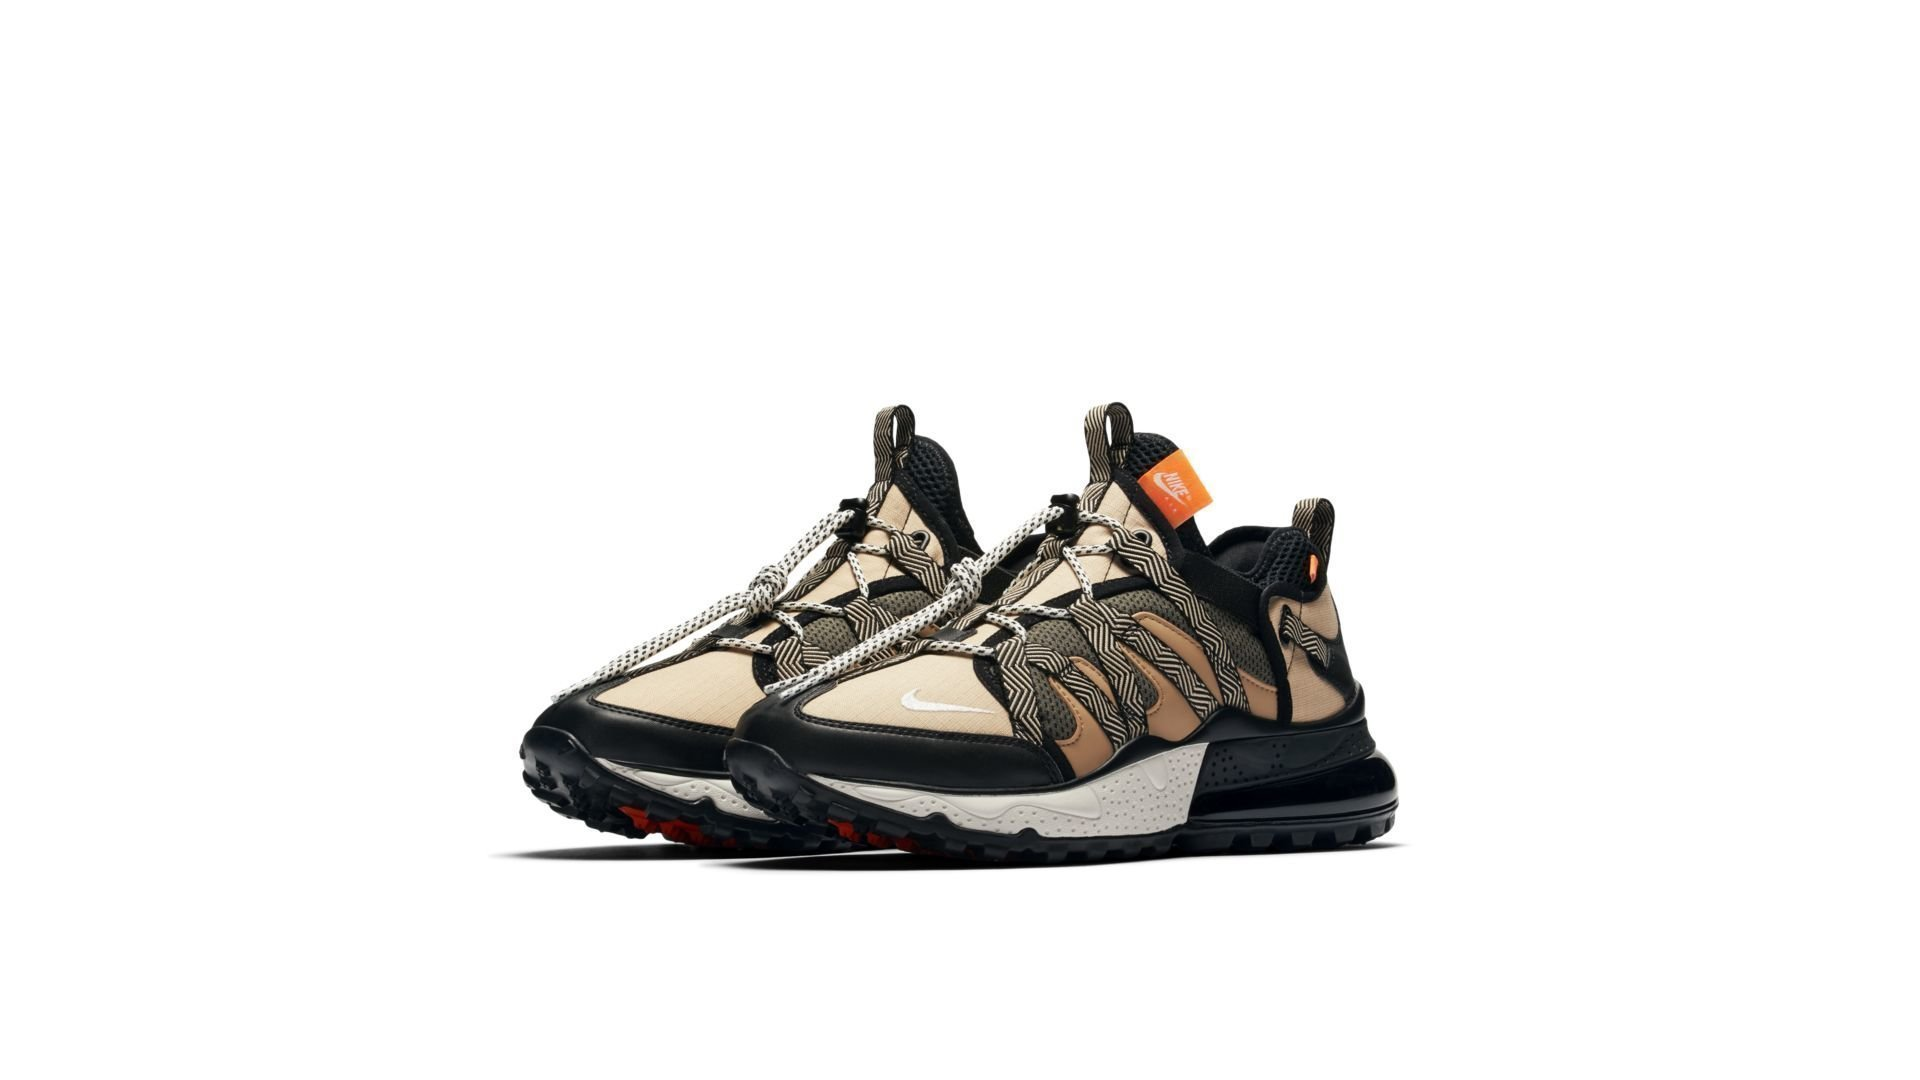 Nike Air Max 270 Bowfin BlackPhantom Desert AJ7200 001